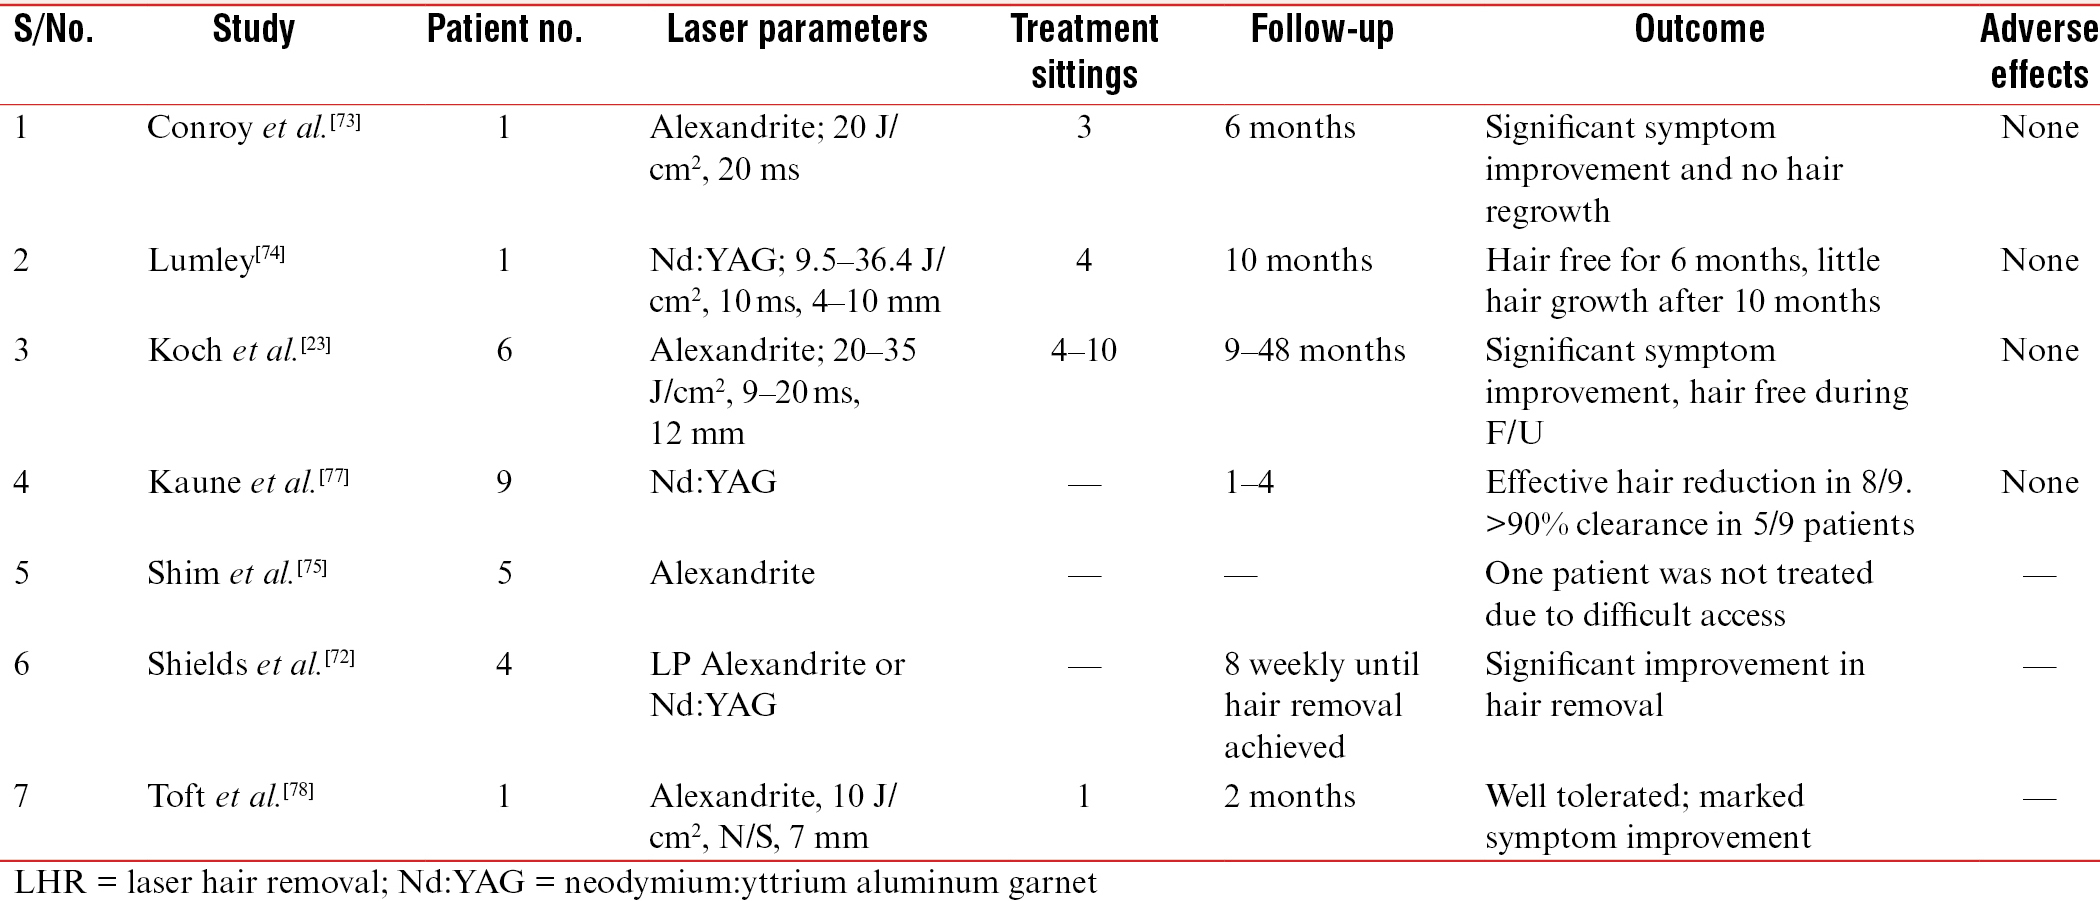 Table 5: Laser hair removal in hairy flaps and grafts in oral mucosa